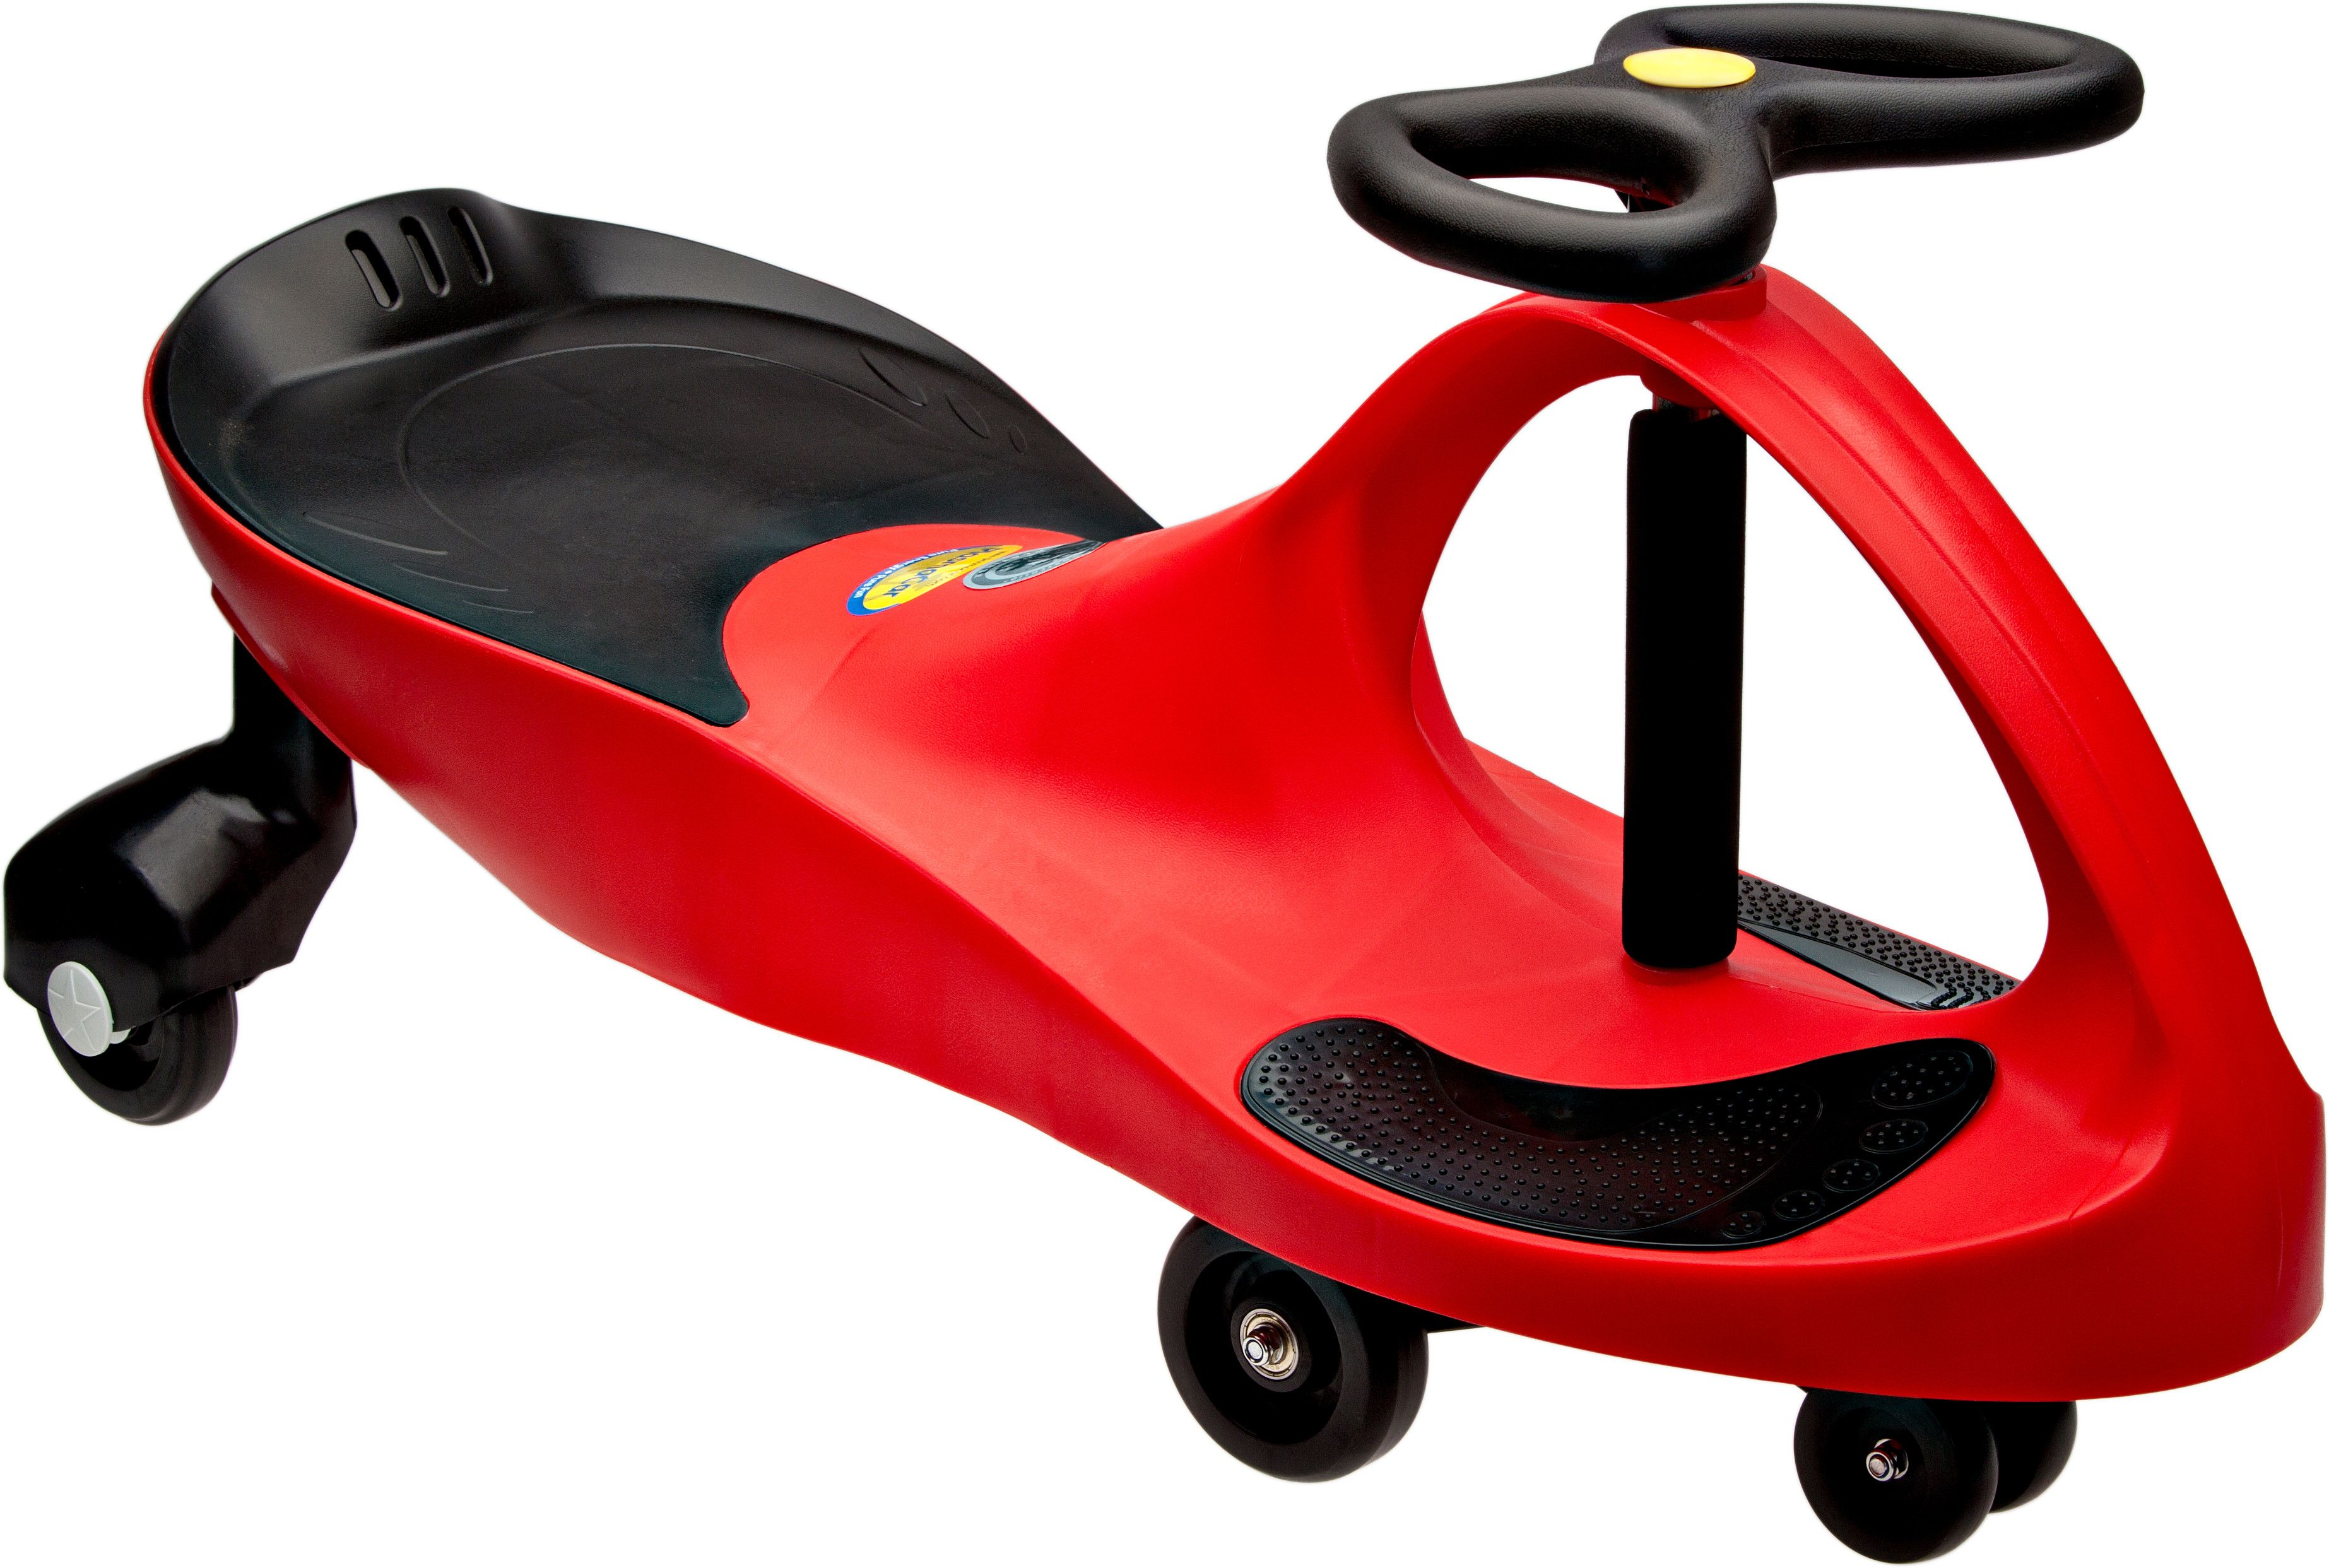 Plasmacar Red Plasmacar Red Shop For Plasmacar Products In India Toys For 2 5 Years Kids Flipkart Com Ride On Toys Push Toys Outdoor Toys